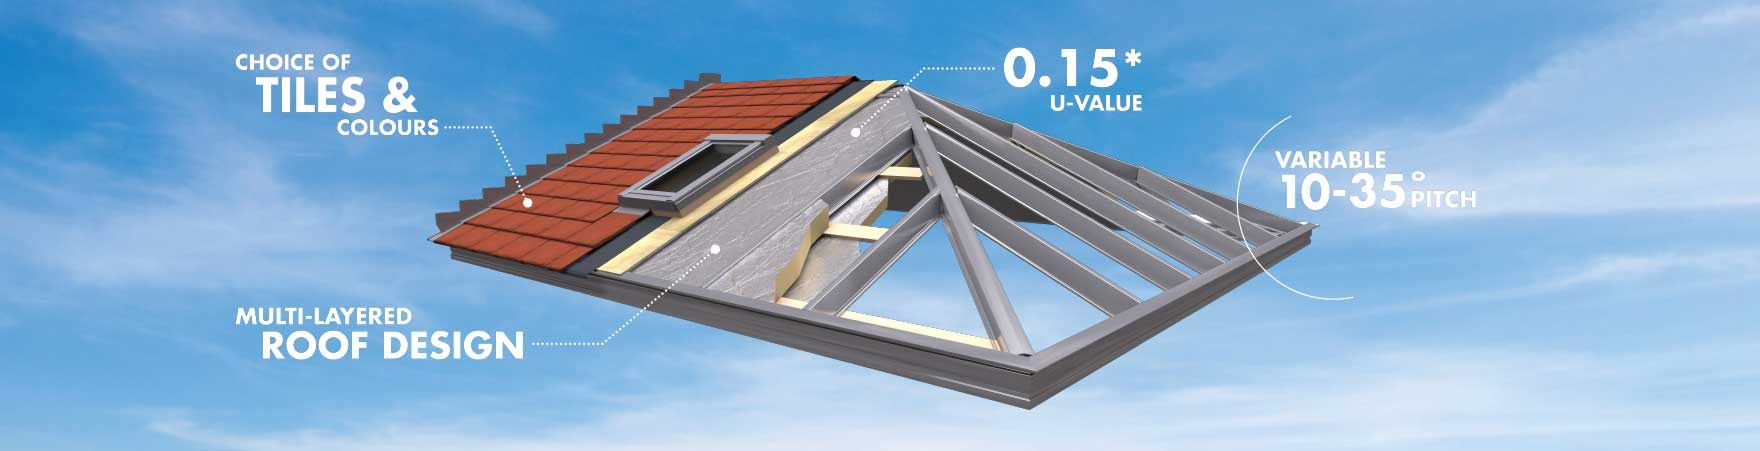 PVC-U Conservatories Equinox Tiled Roof Banner One